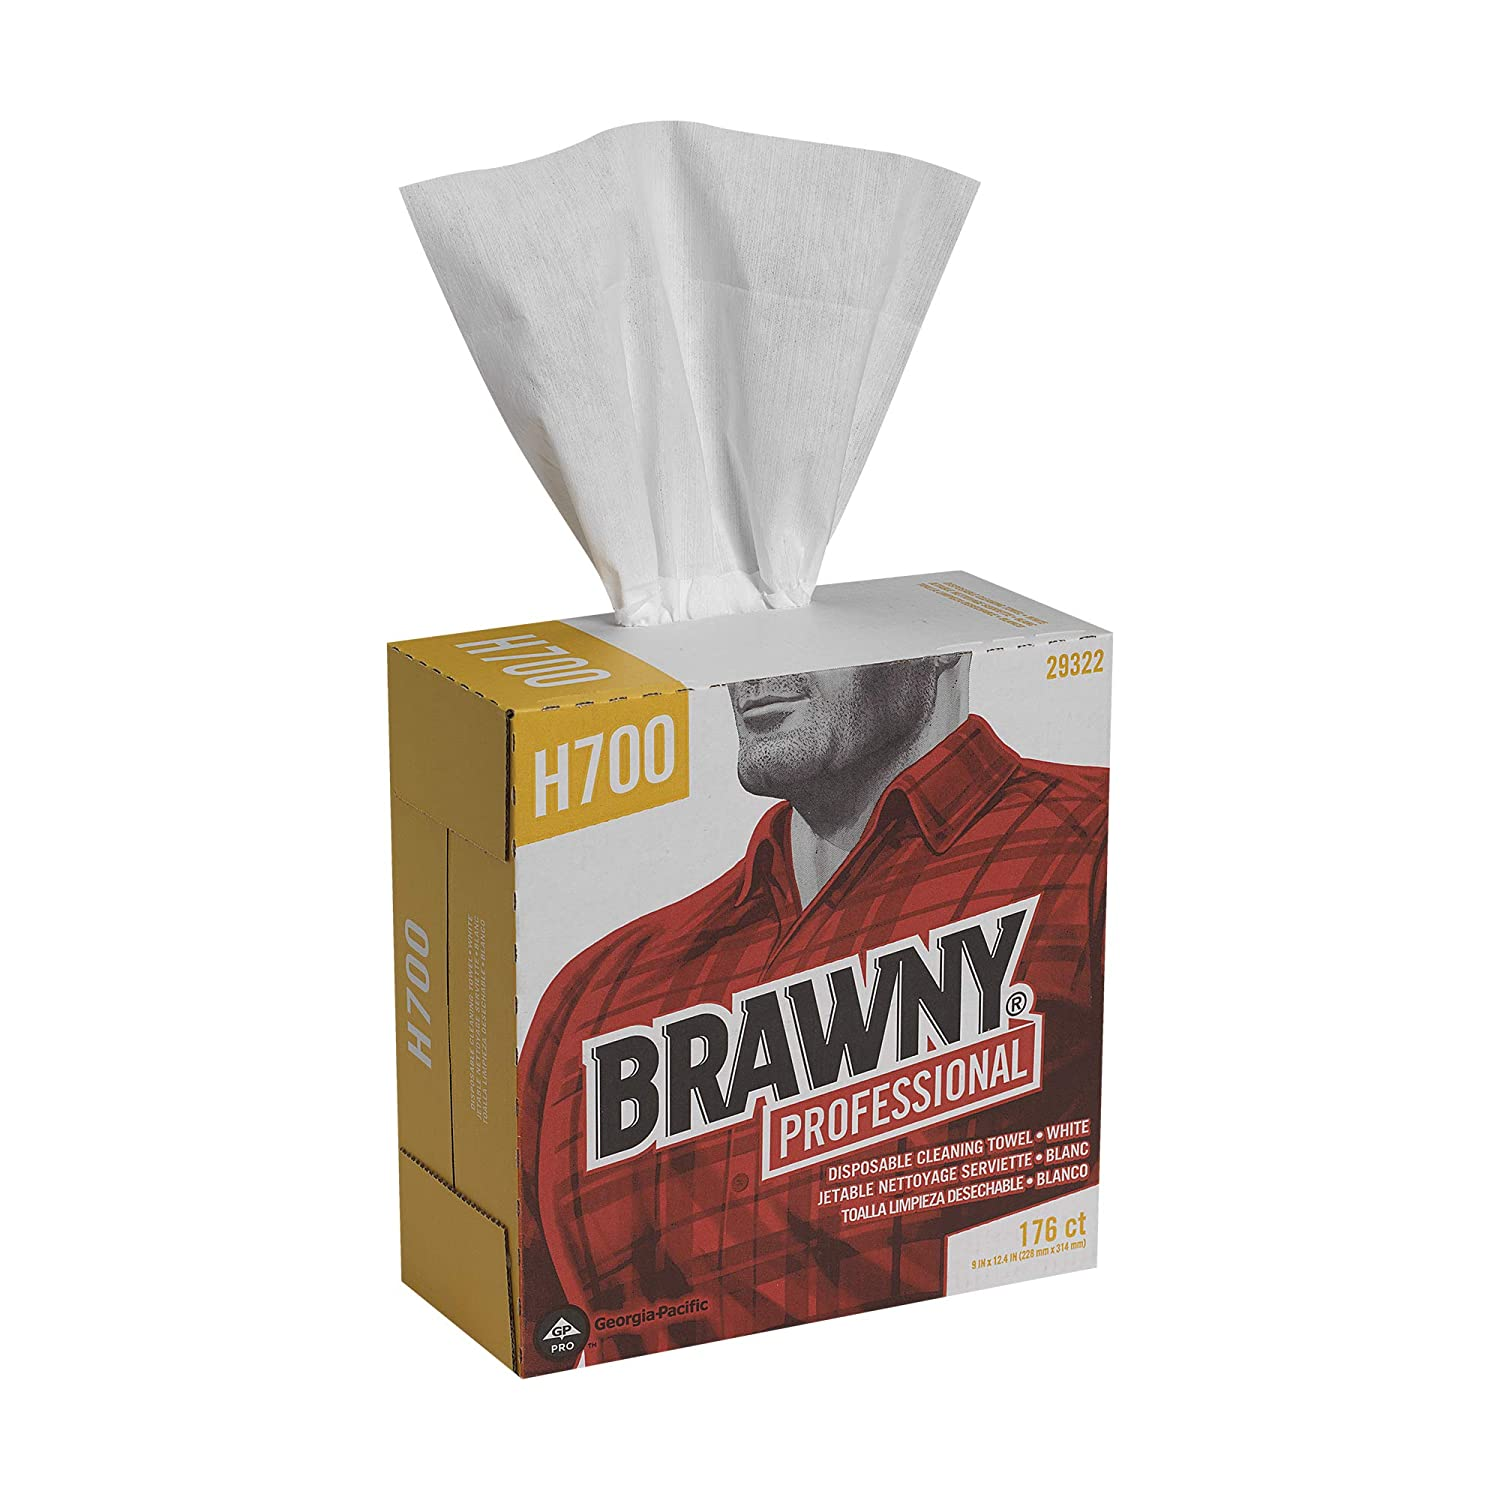 Brawny Professional Heavyweight Disposable Shop Towels by GP PRO